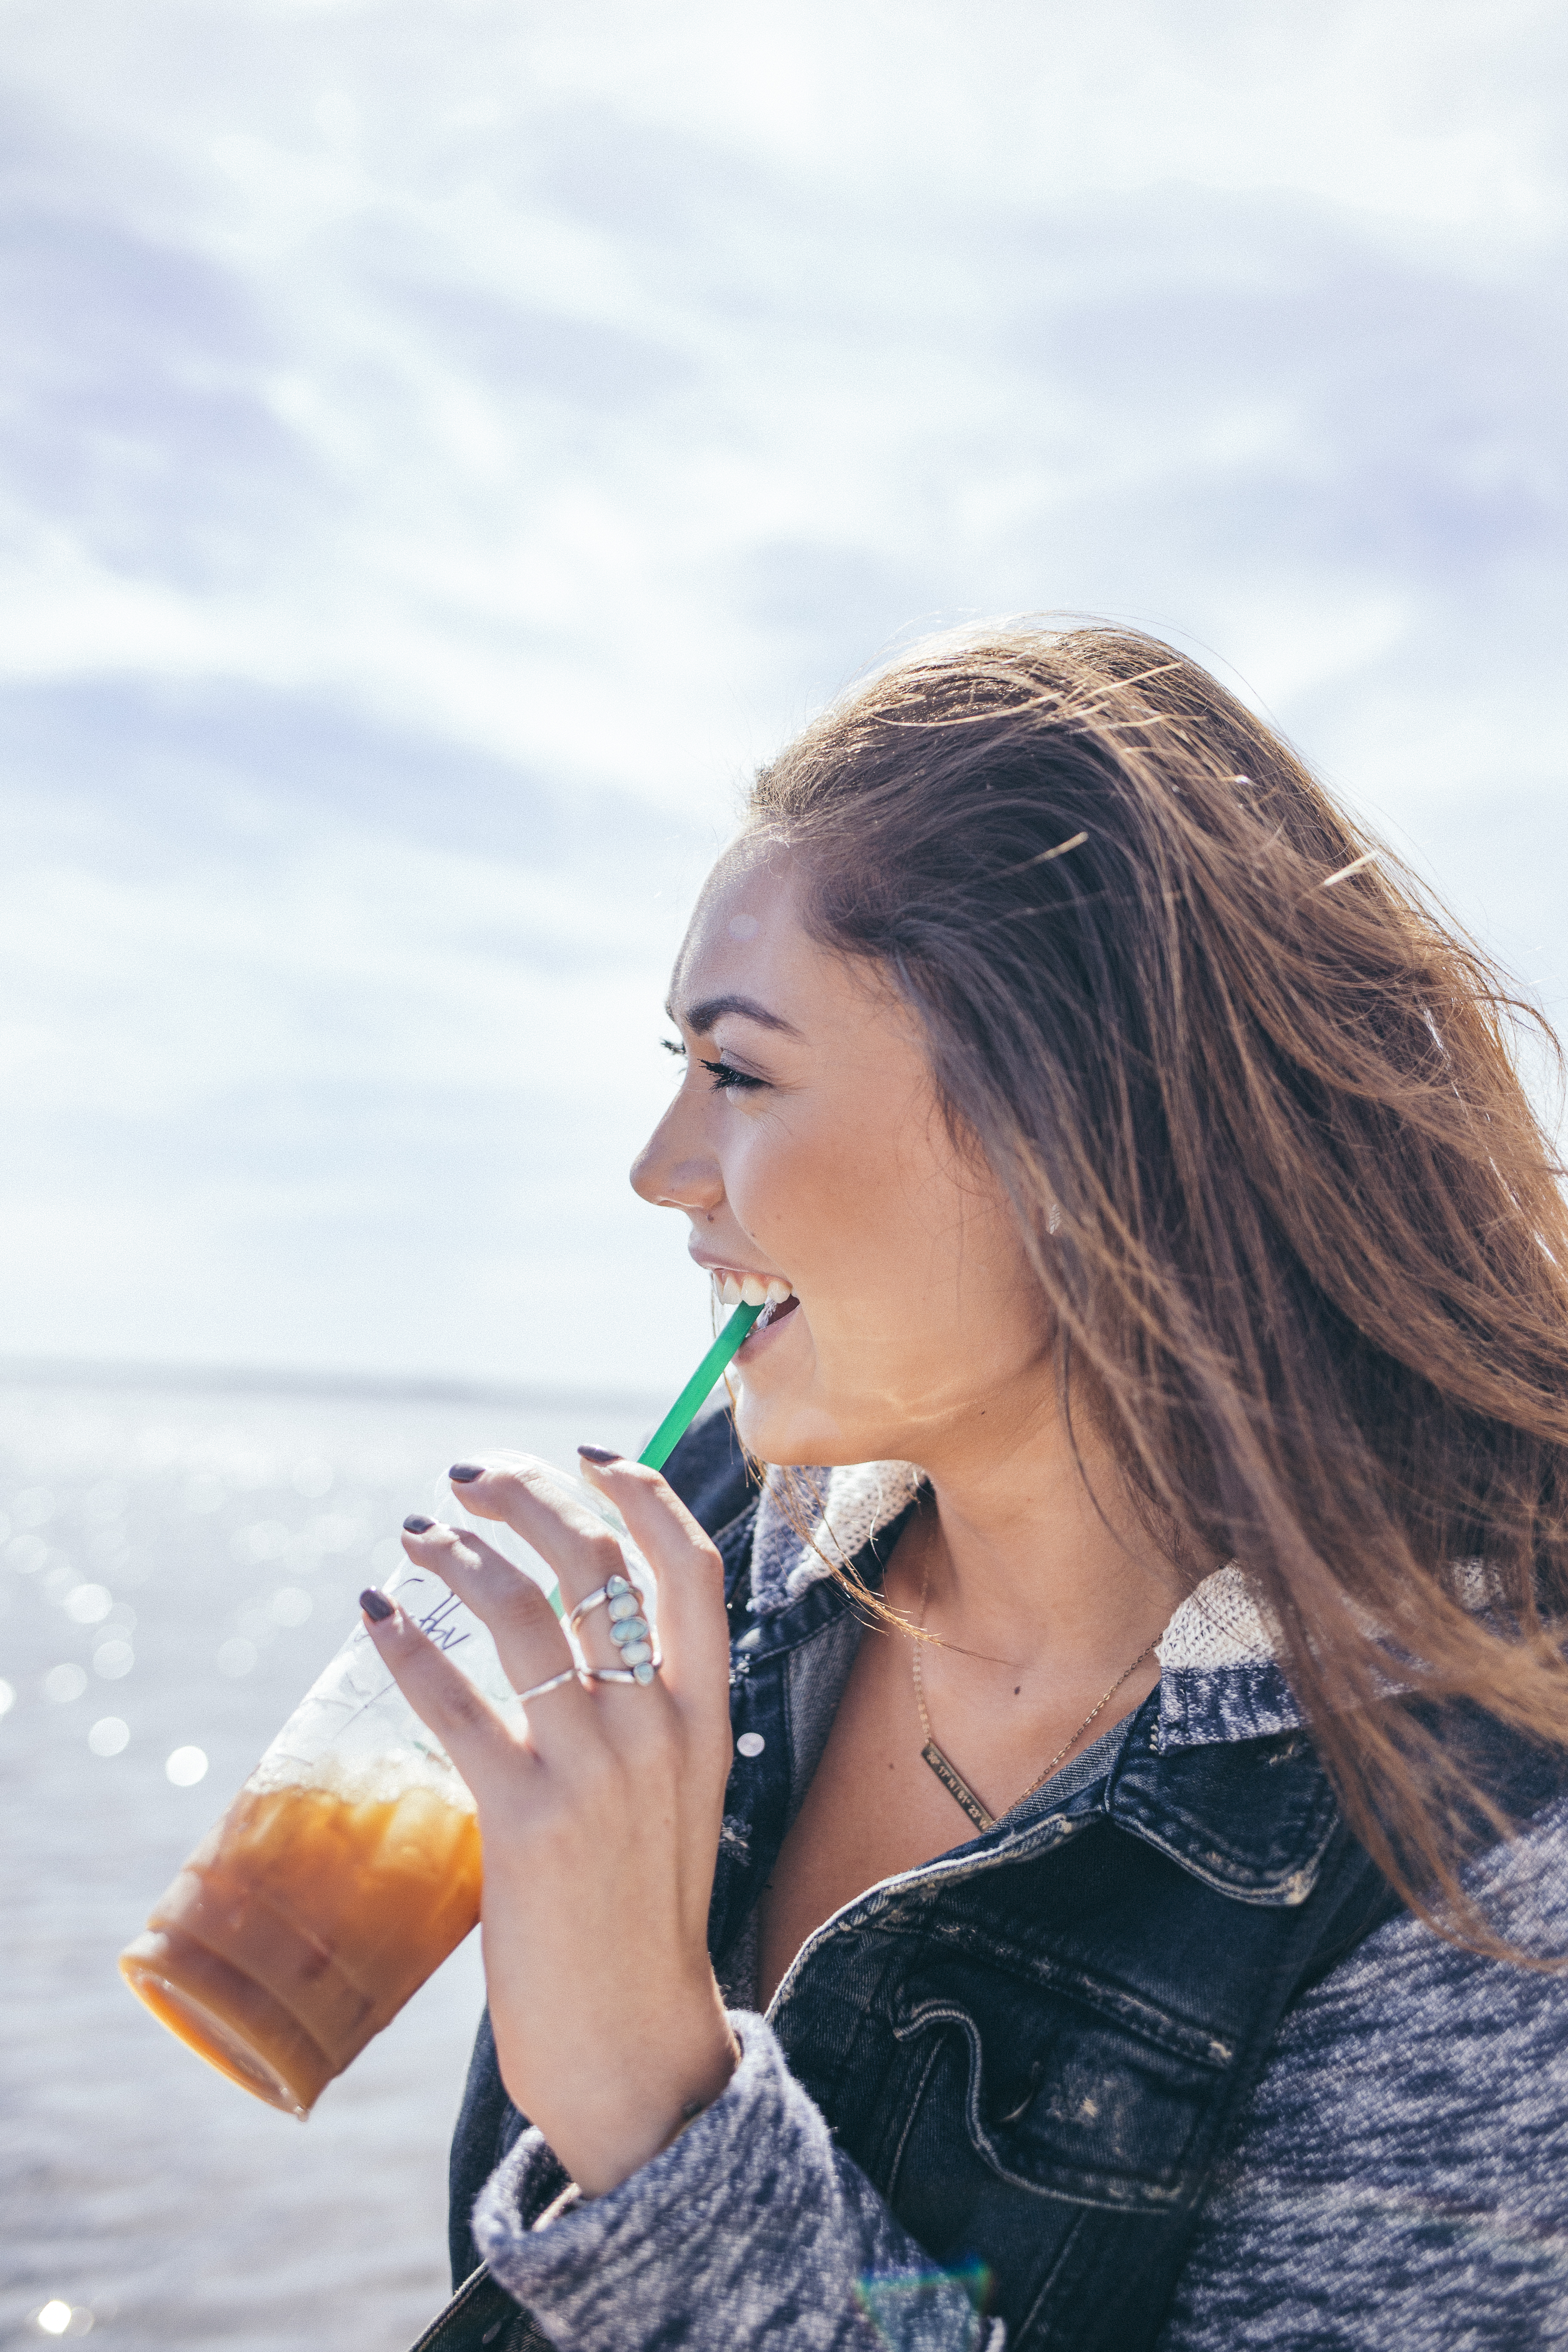 woman wearing black and grey jacket holding glass cup while drinking near body of water during daytime, wake and bake tips